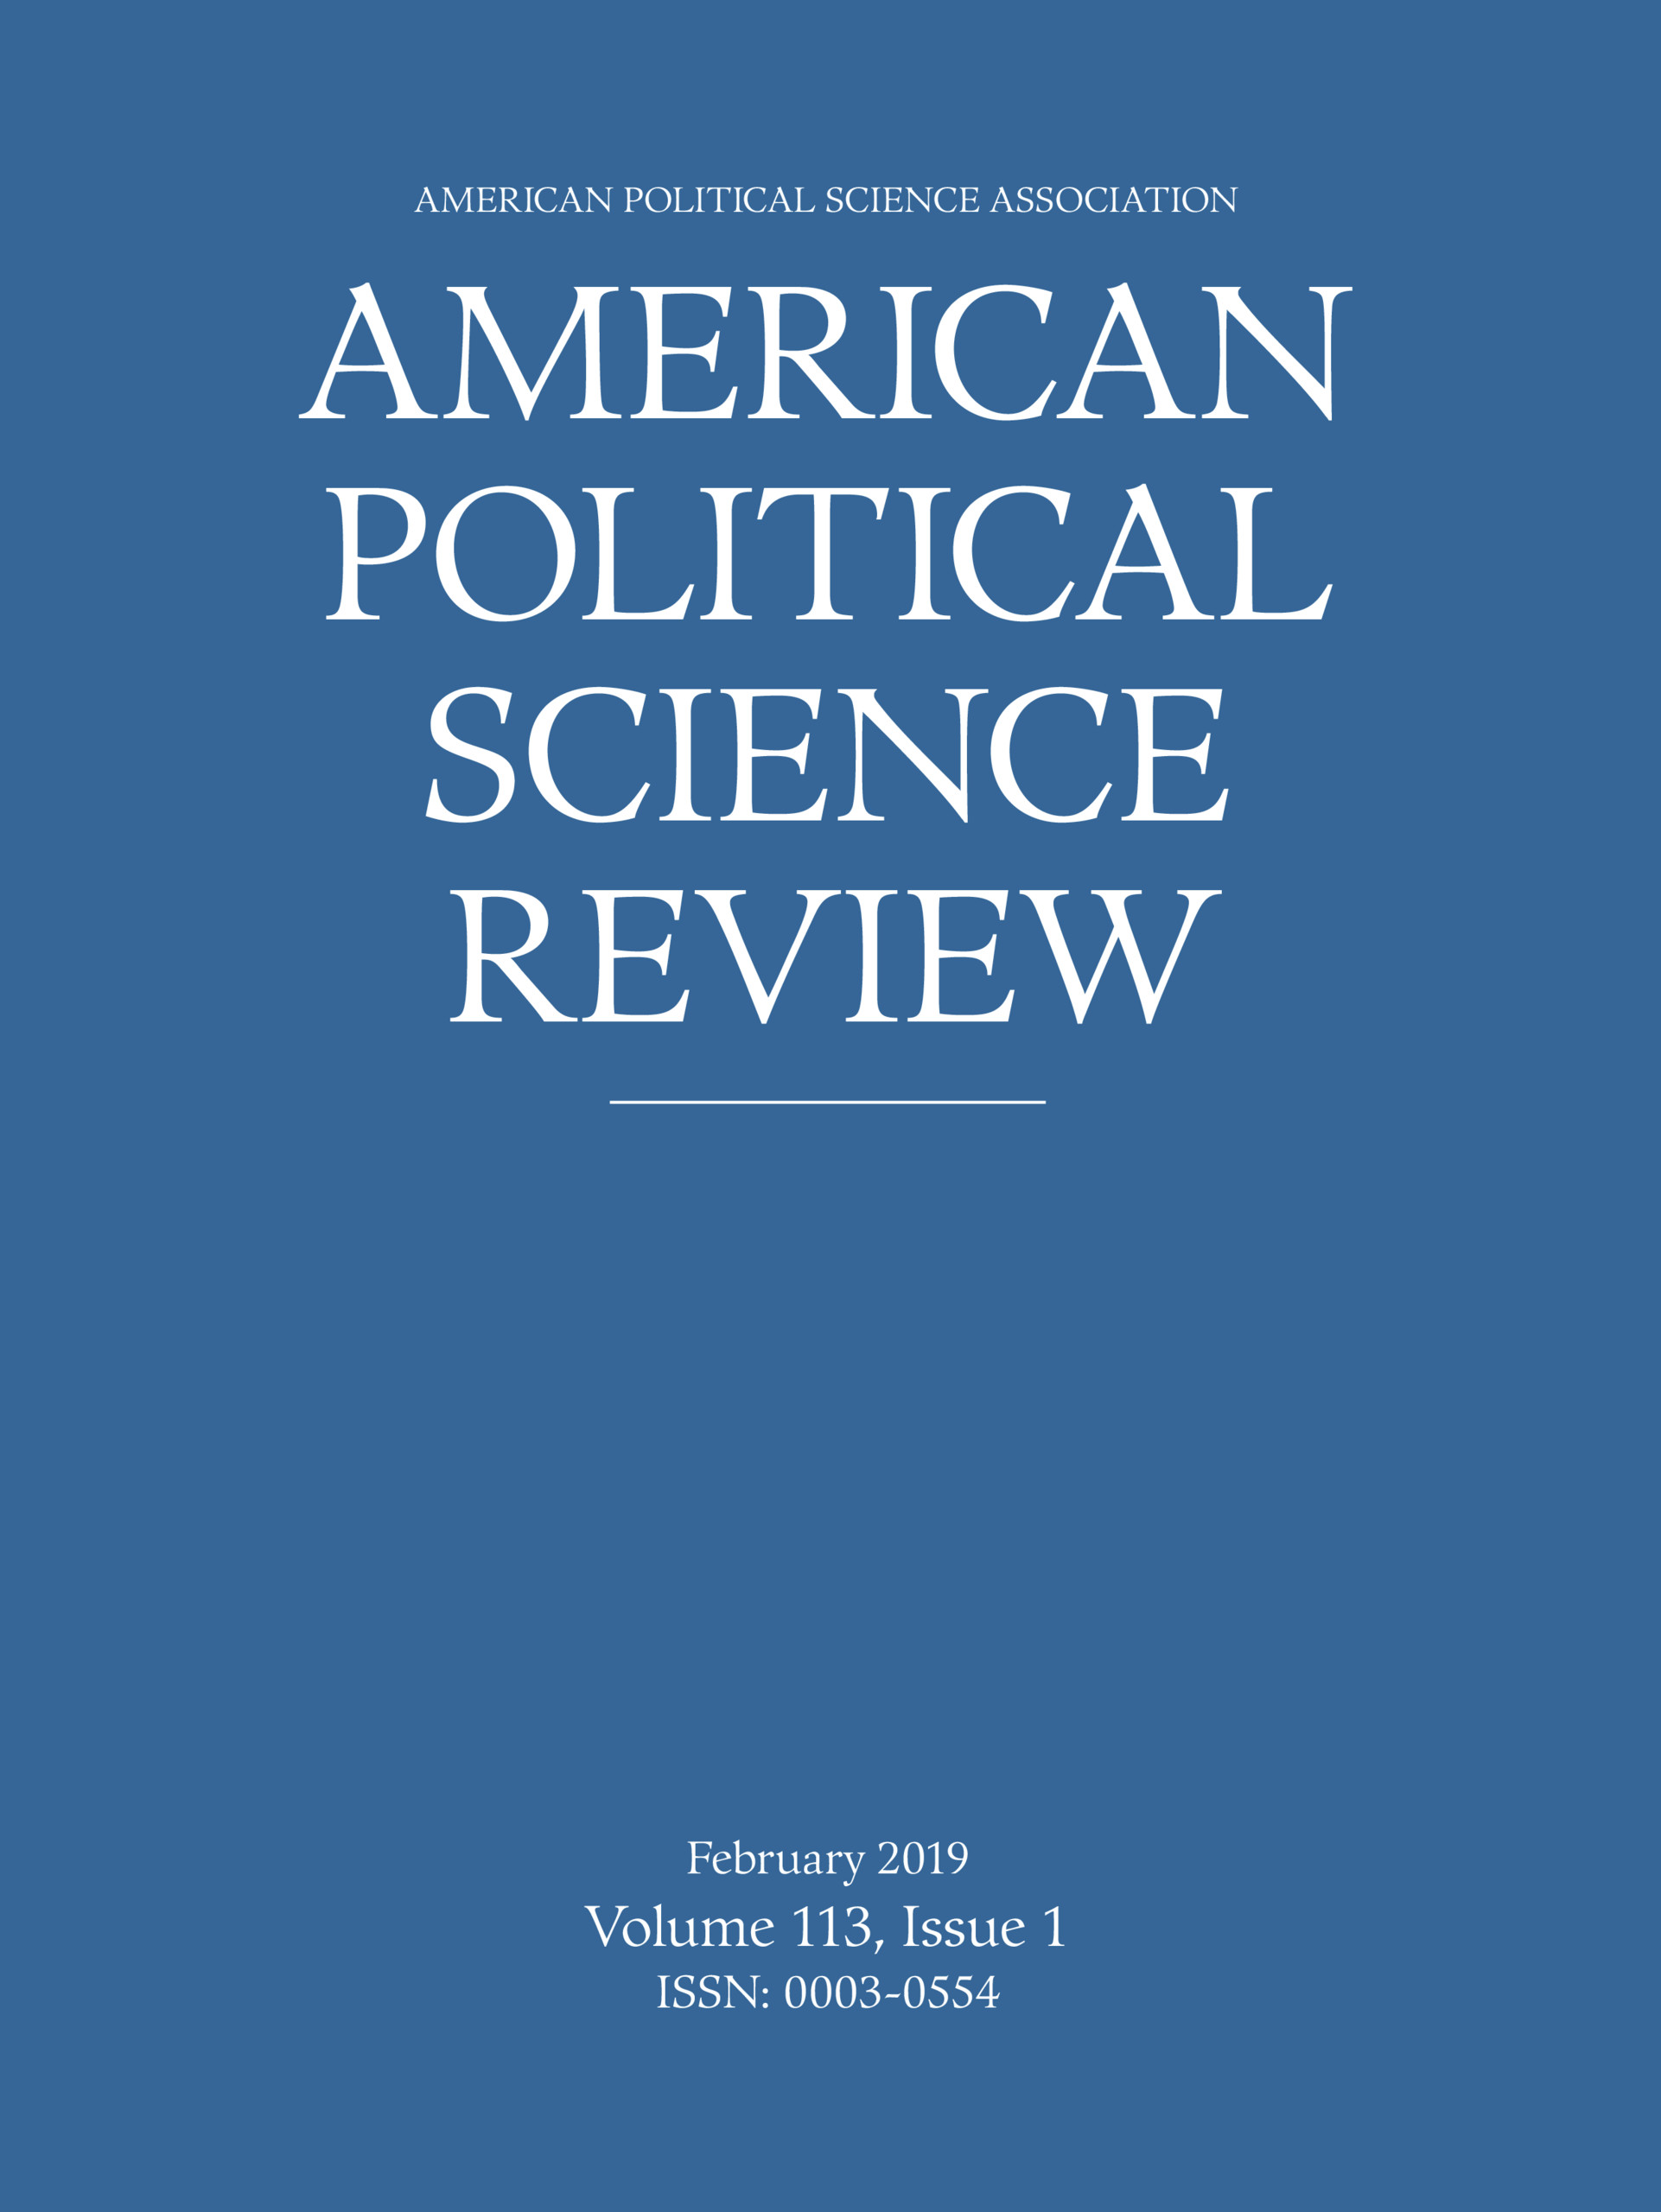 American Political Science Review Volume 113